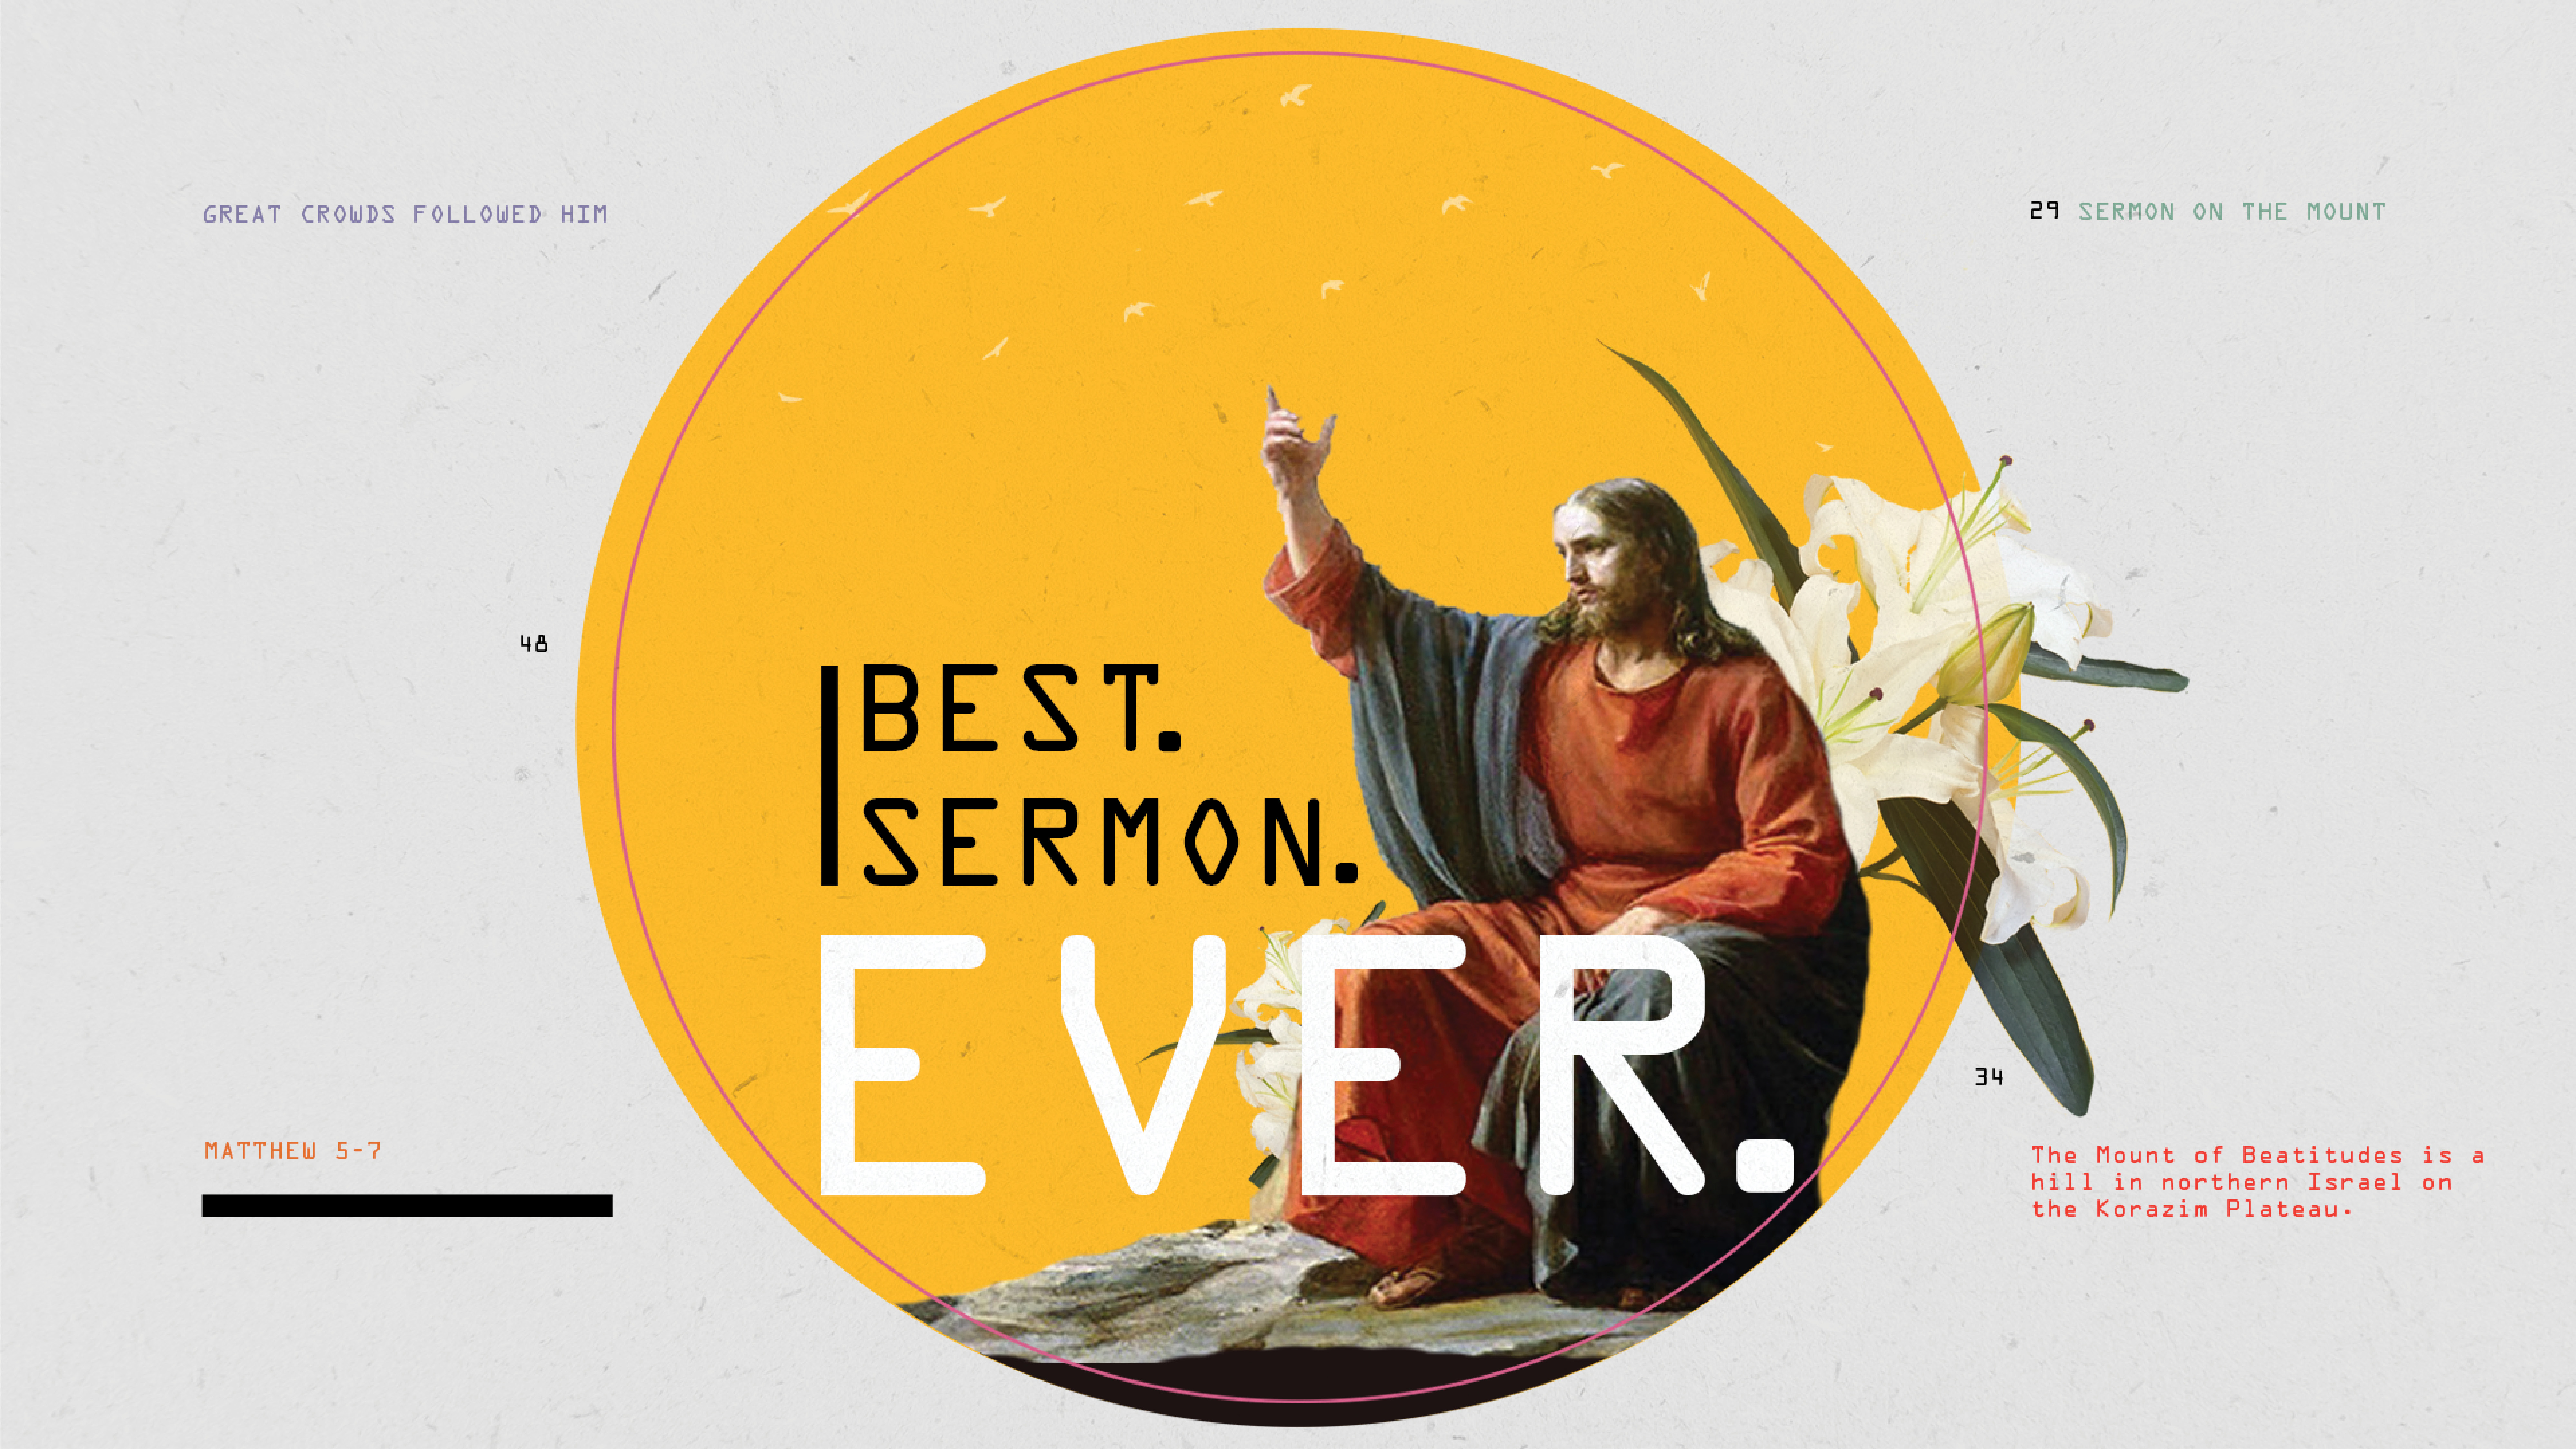 Best. Sermon. Ever. - Week 3: Anger